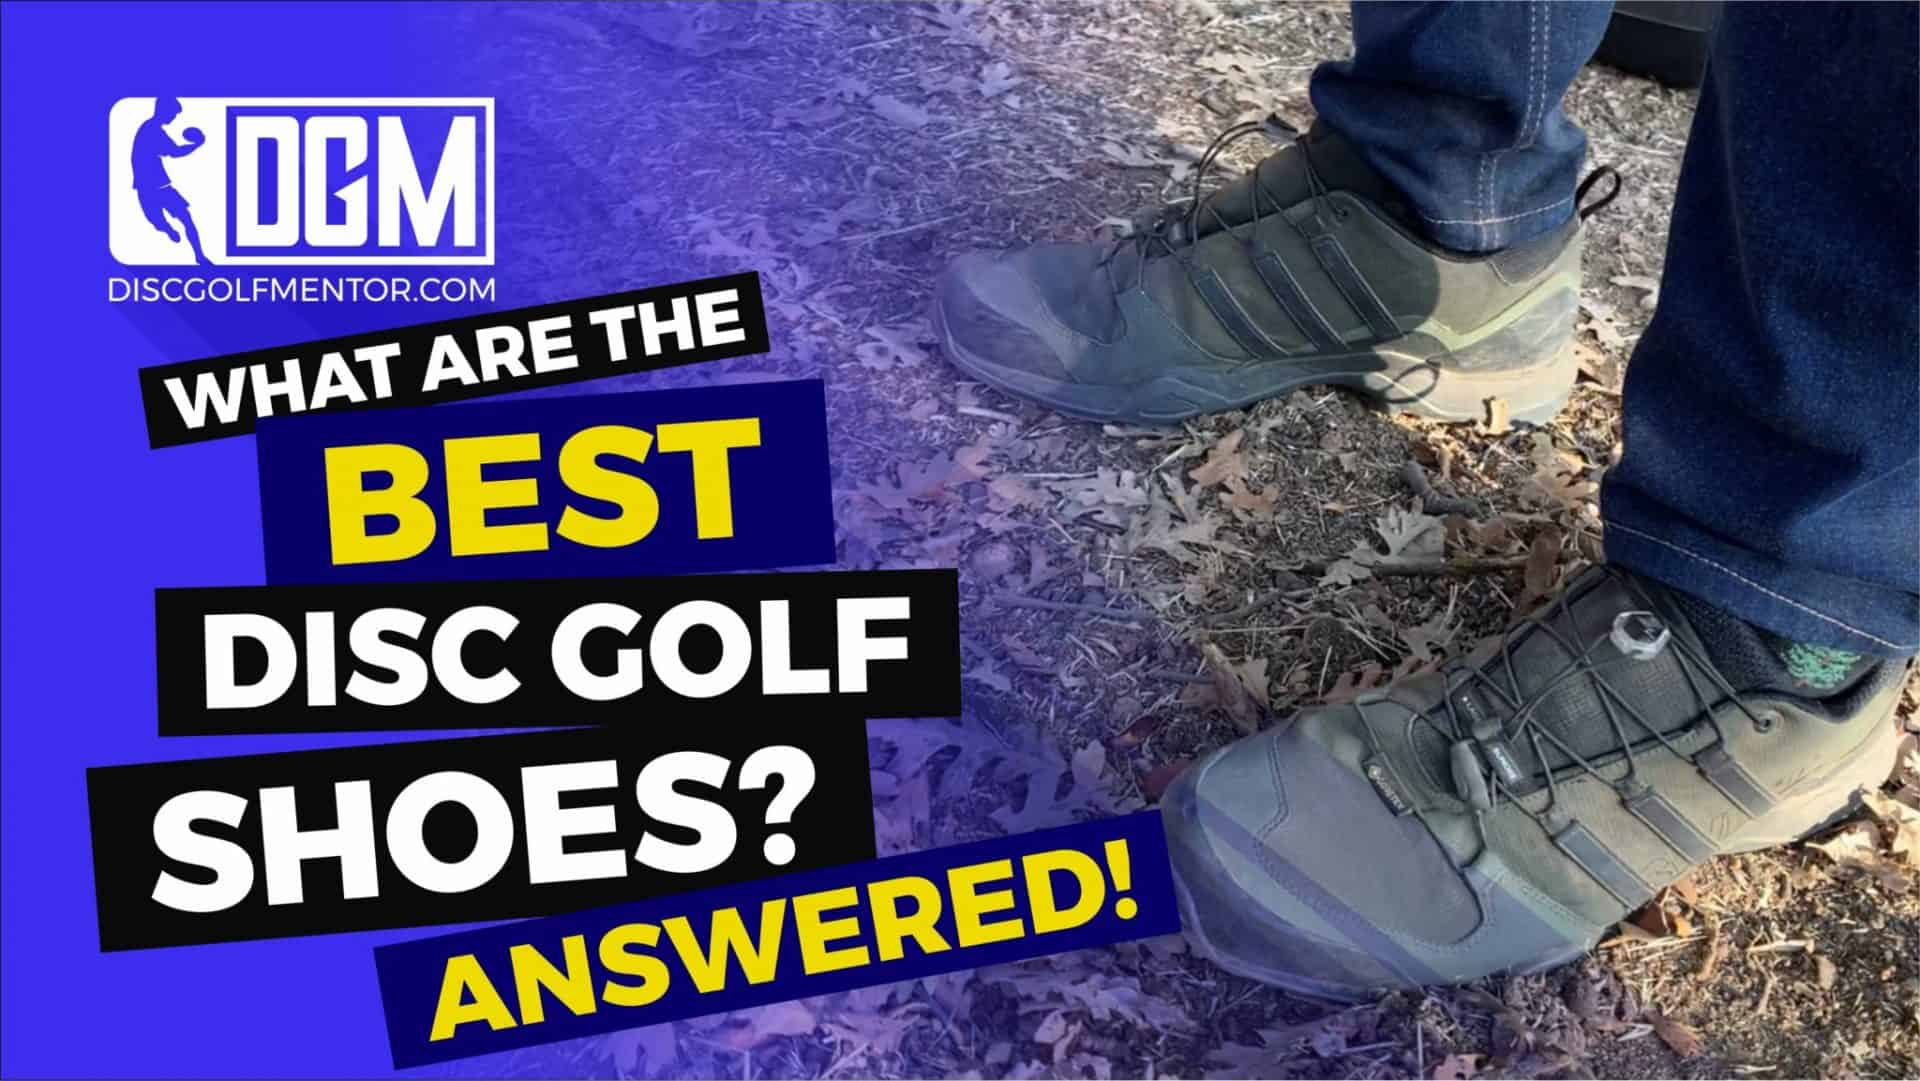 What Are The Best Disc Golf Shoes? - Answered! - Disc Golf Mentor